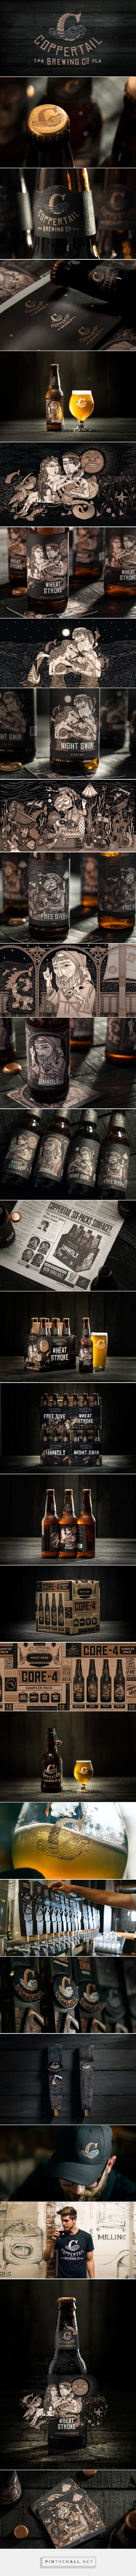 Coppertail Brewing Co. #packaging designed by sparkbrand - http://www.packagingoftheworld.com/2015/04/coppertail-brewing-co.html